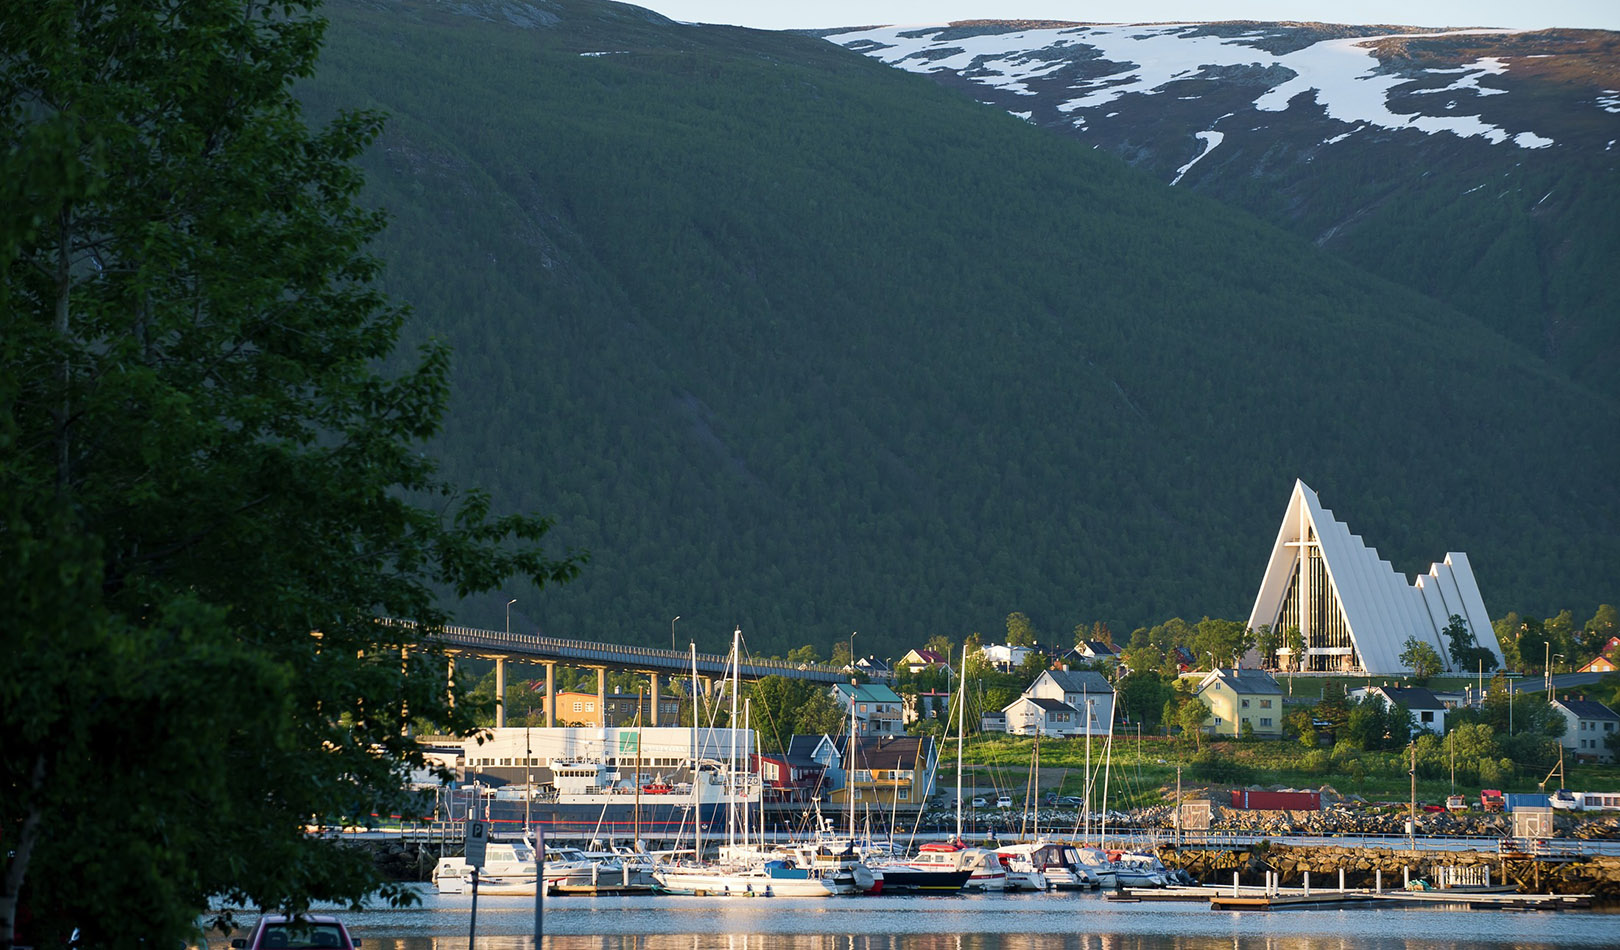 The iconic church of Tromsø with boats in the foreground and mountains in the background.